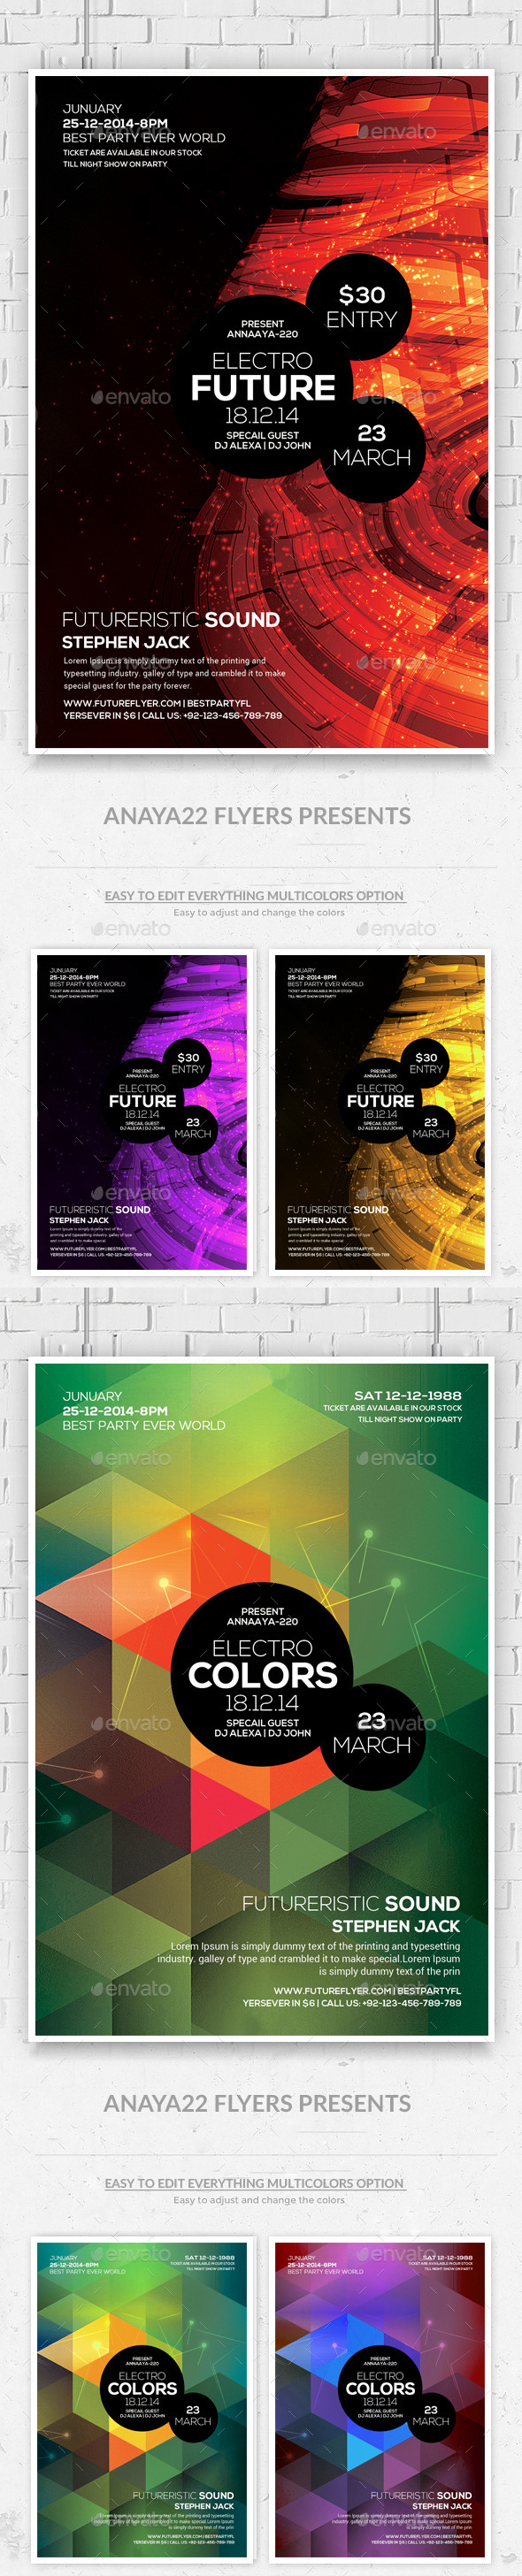 Minimal Abstract Futuristic Psd Flyers Bundle - Clubs & Parties Events